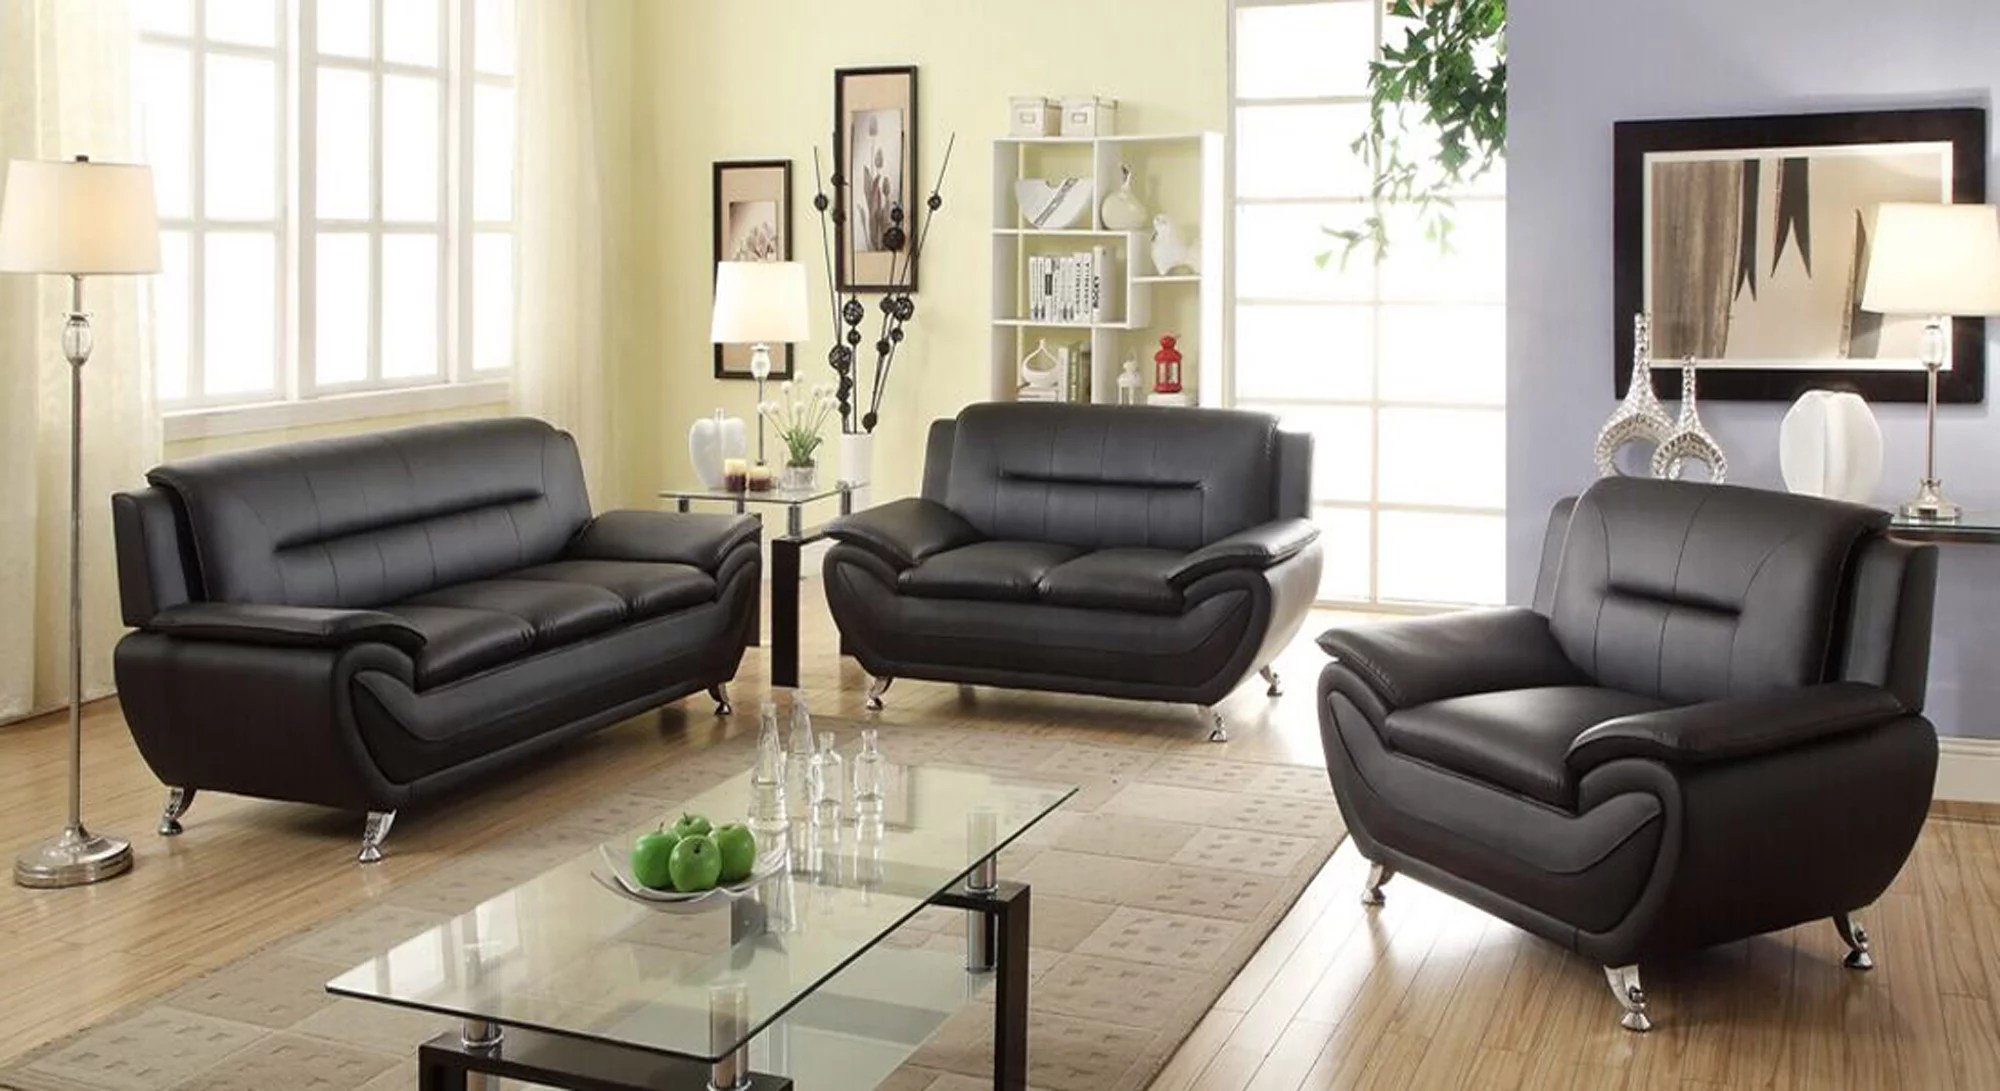 Sofa Sets In Living Room Norton 3 Pc Black Faux Leather Modern Living Room Sofa Set